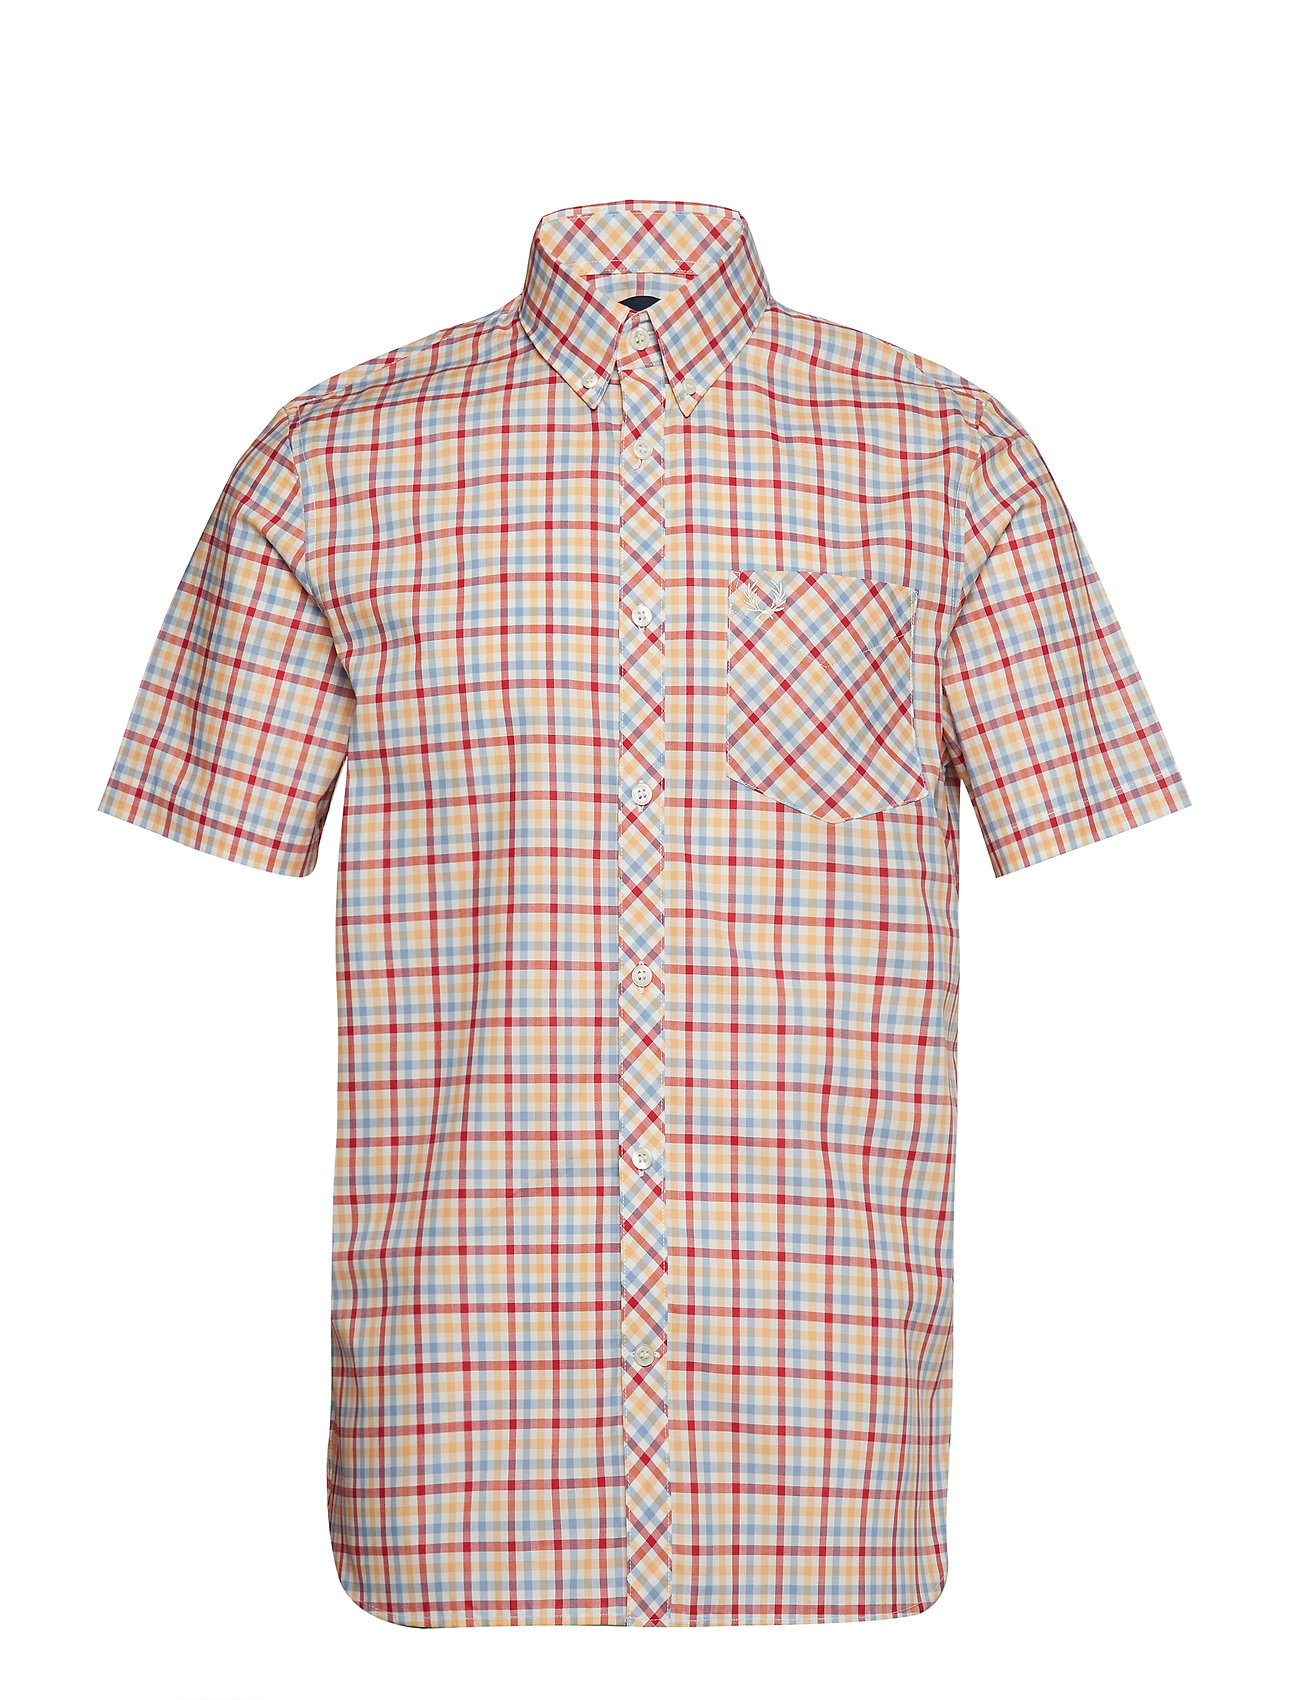 Fred Perry 4 COL GINGHAM SHIRT - SNOW WHITE